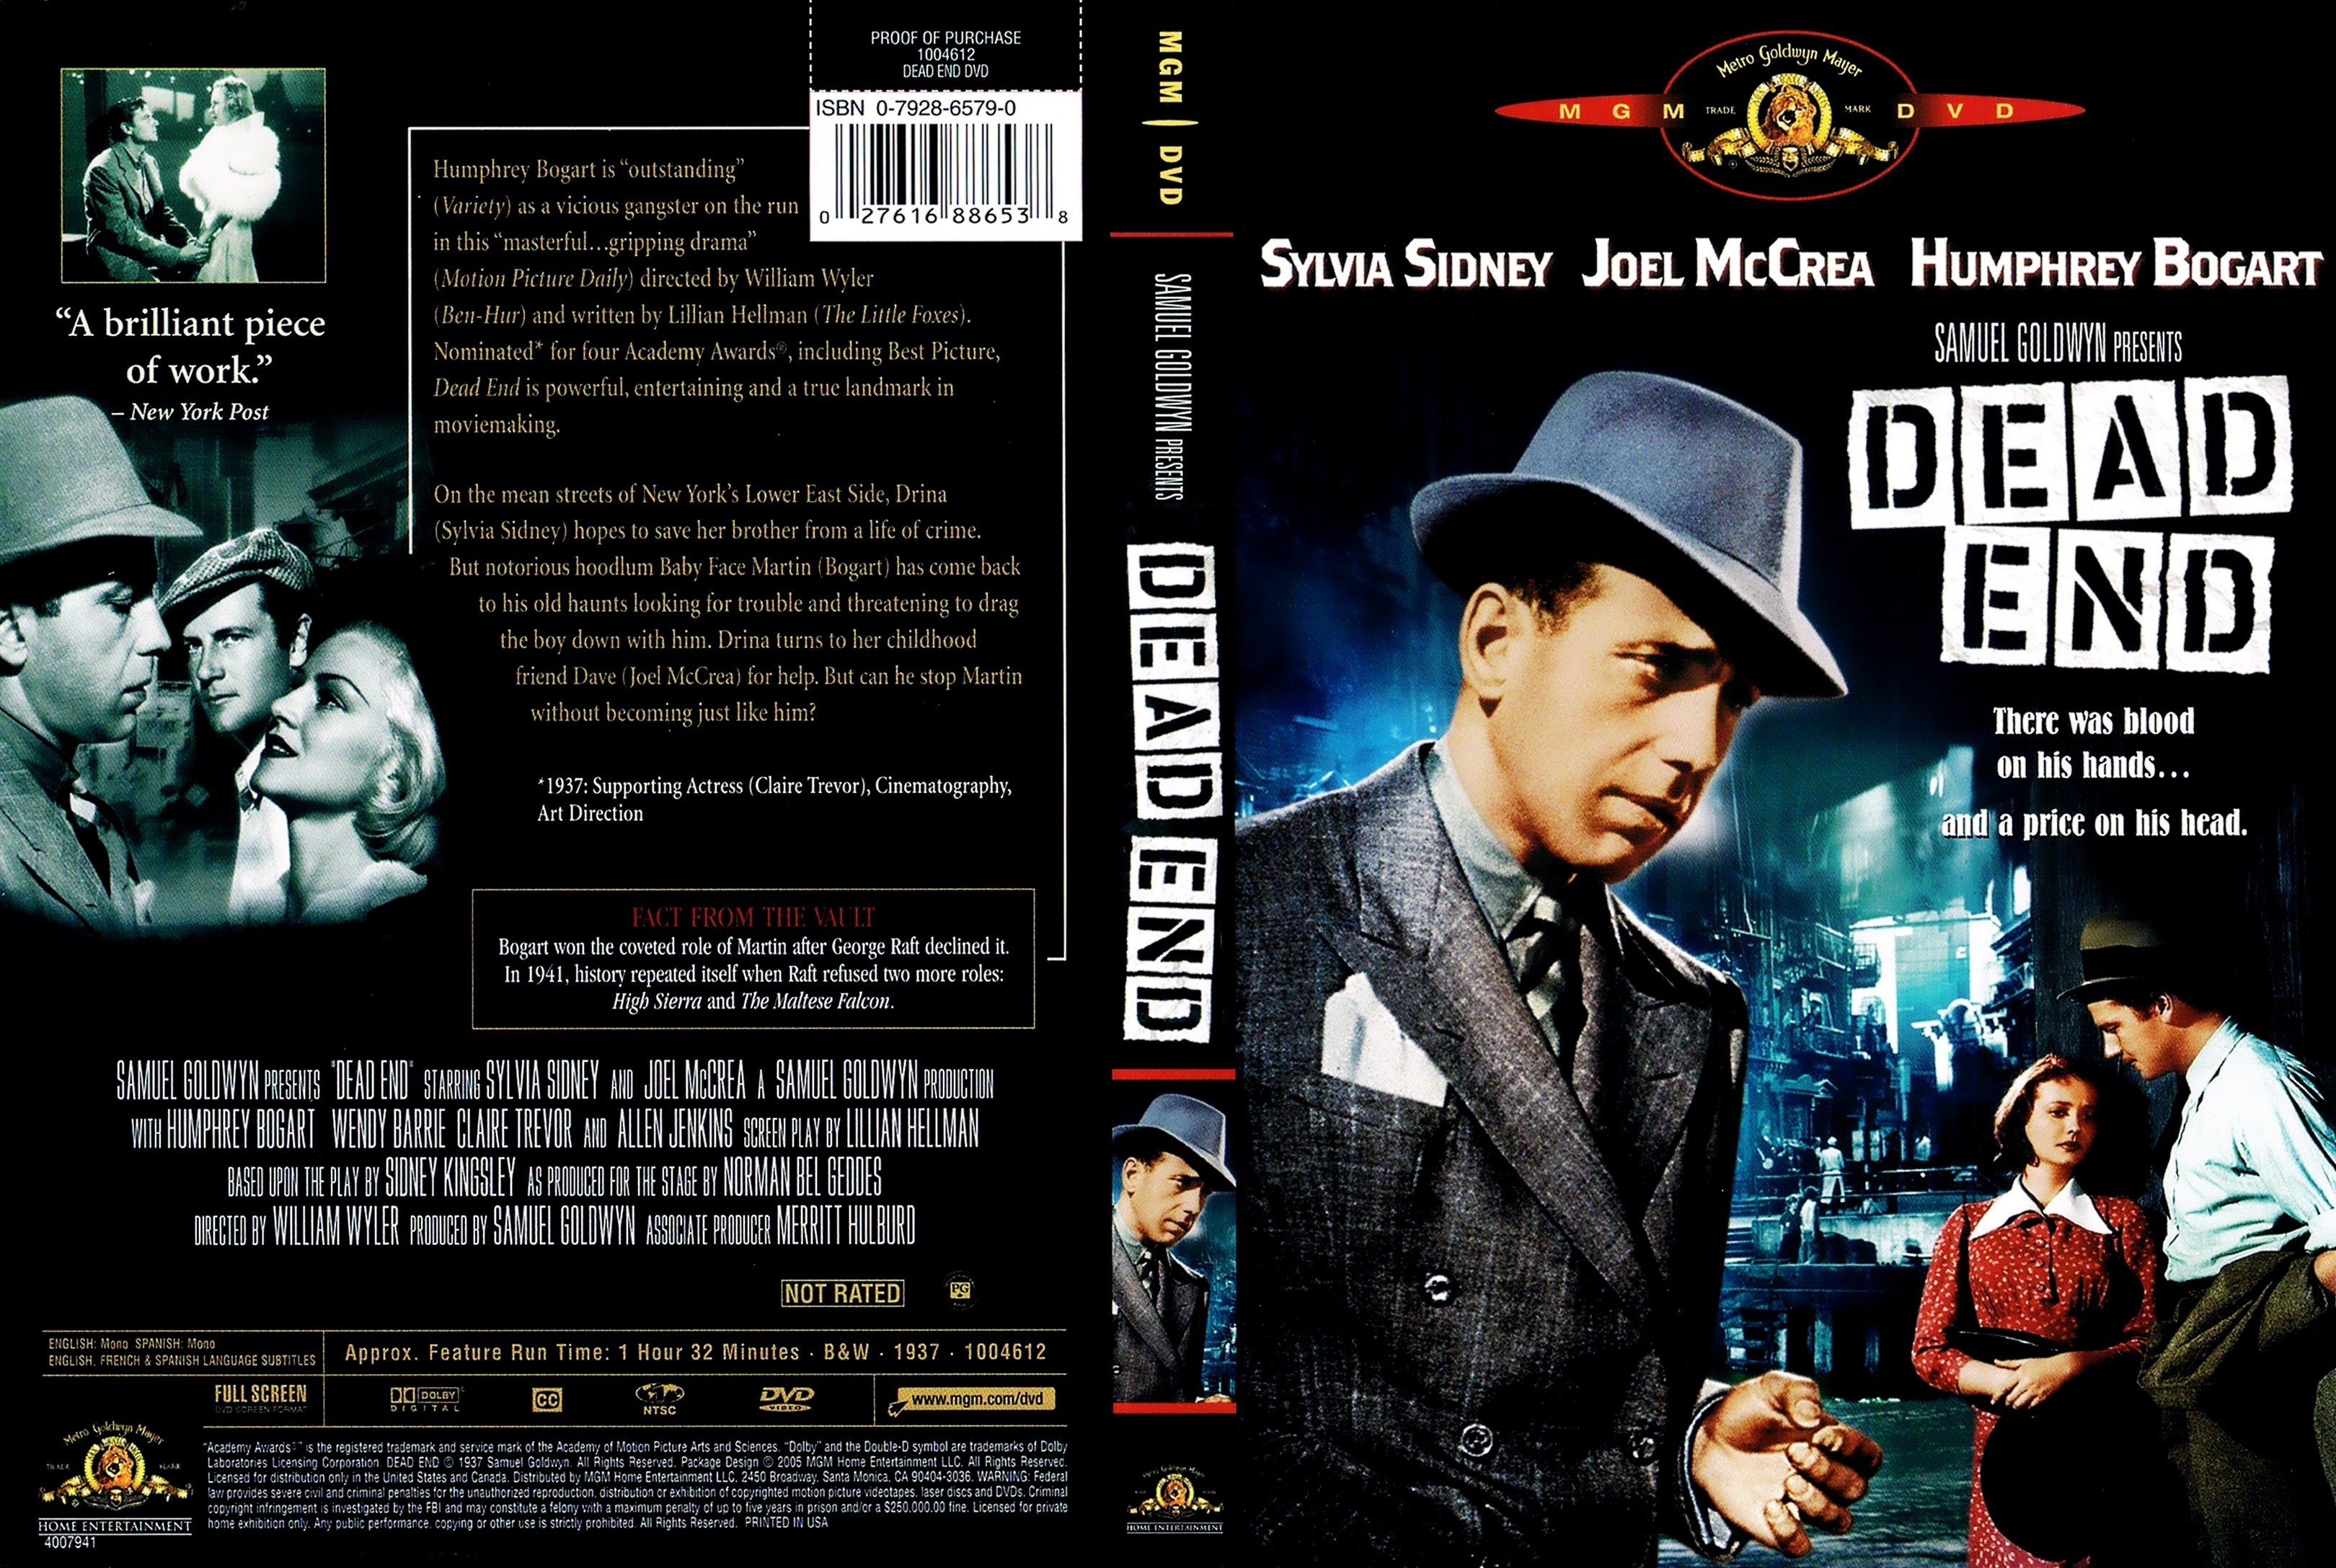 dead end full movie english